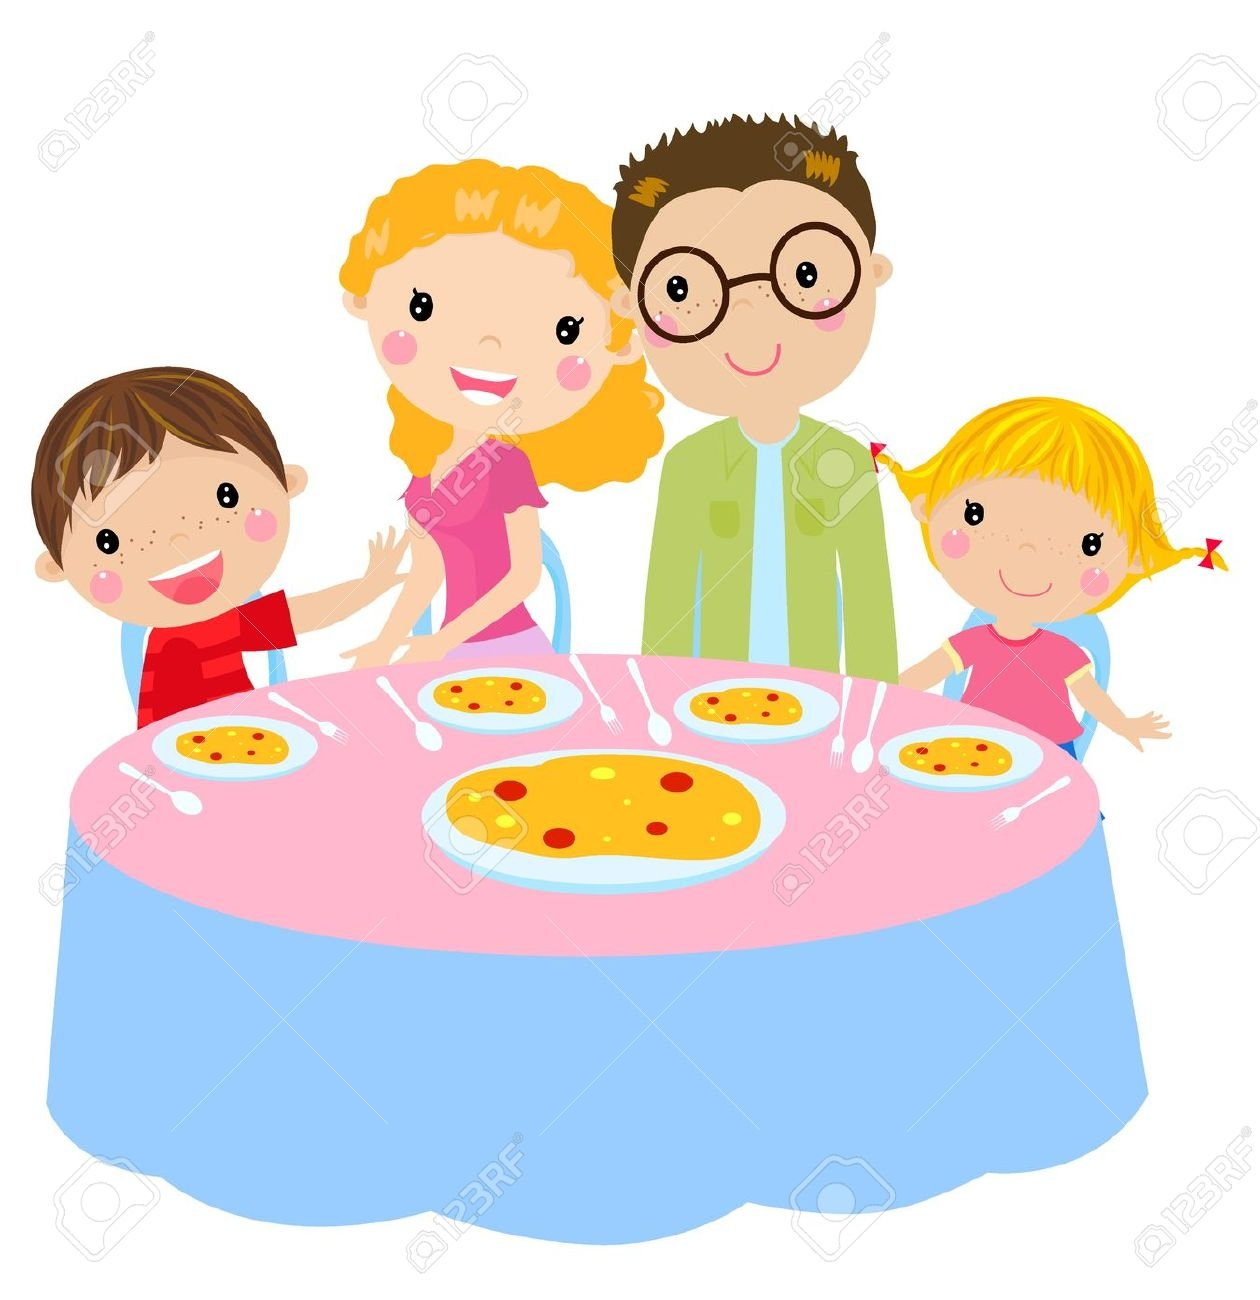 family eating lunch clipart - Clipground